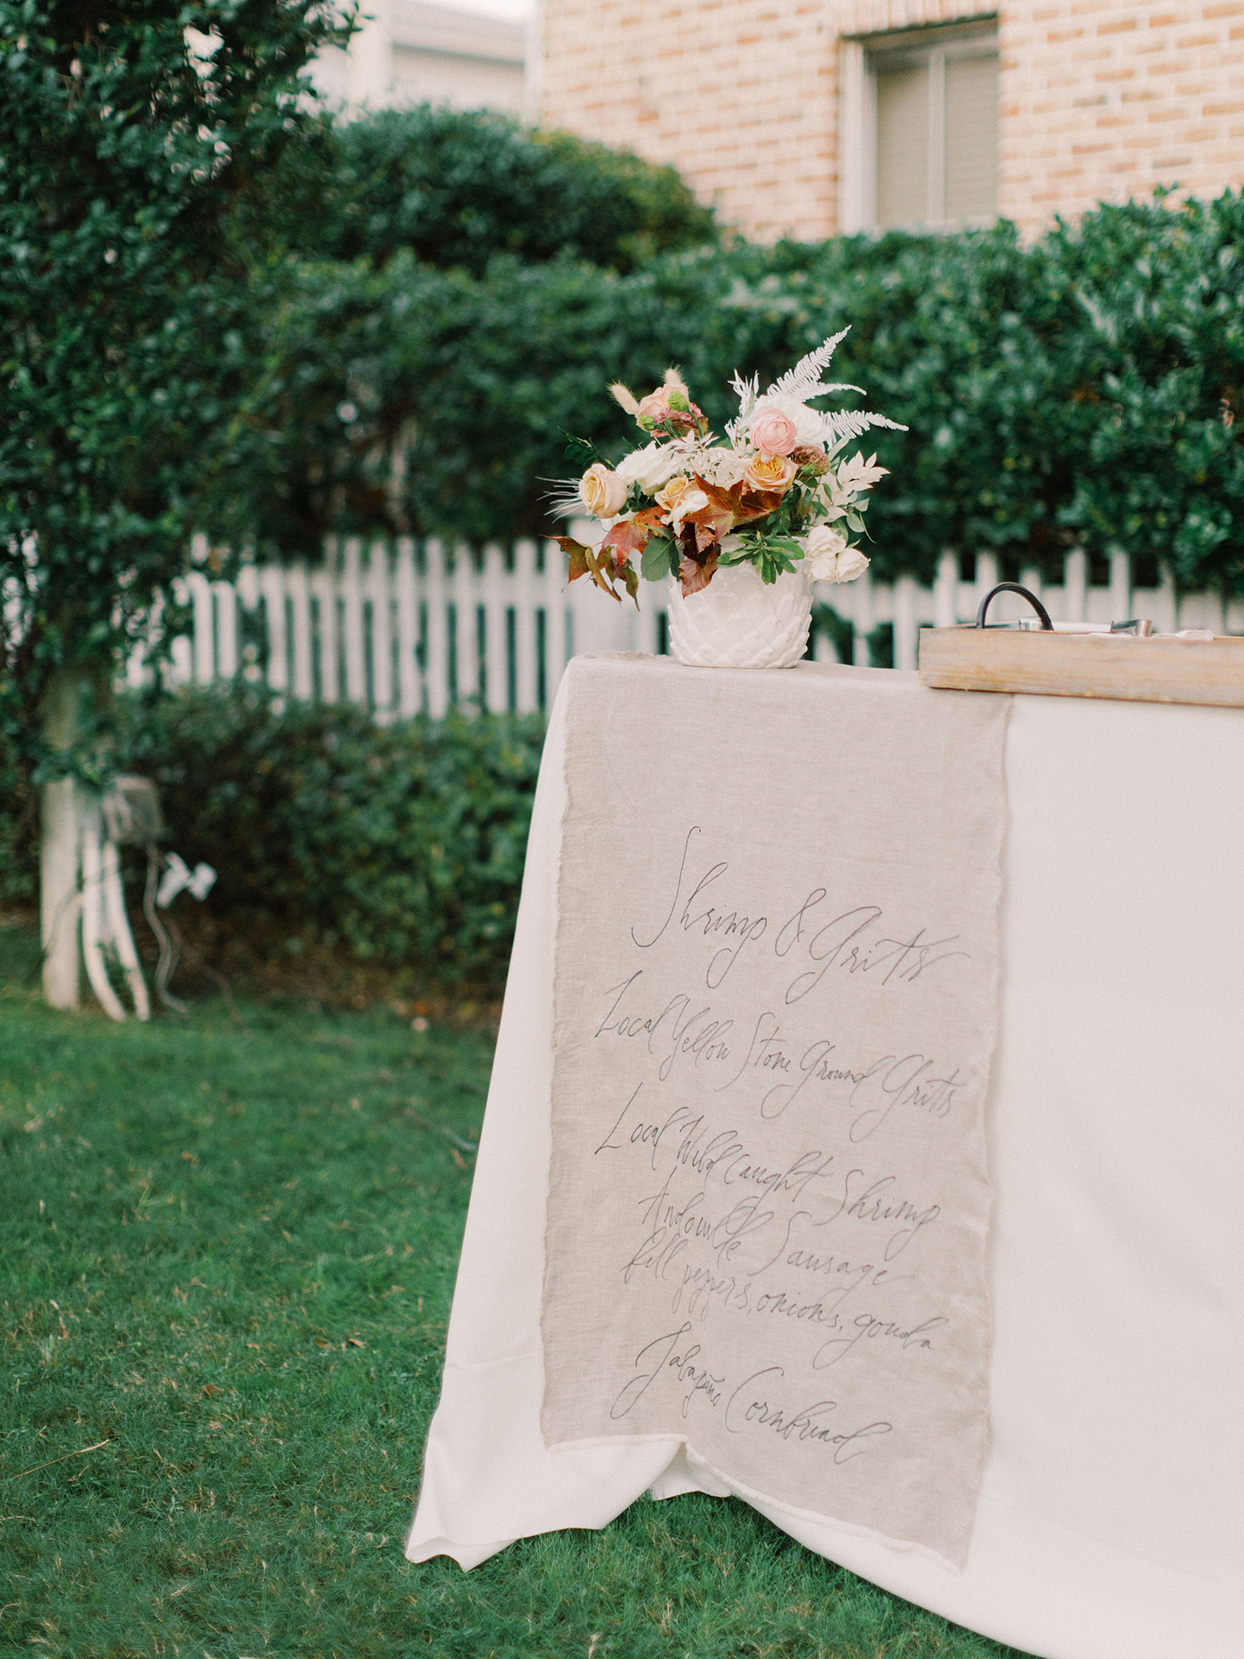 megan parking wedding menu handwritten on decorative linen